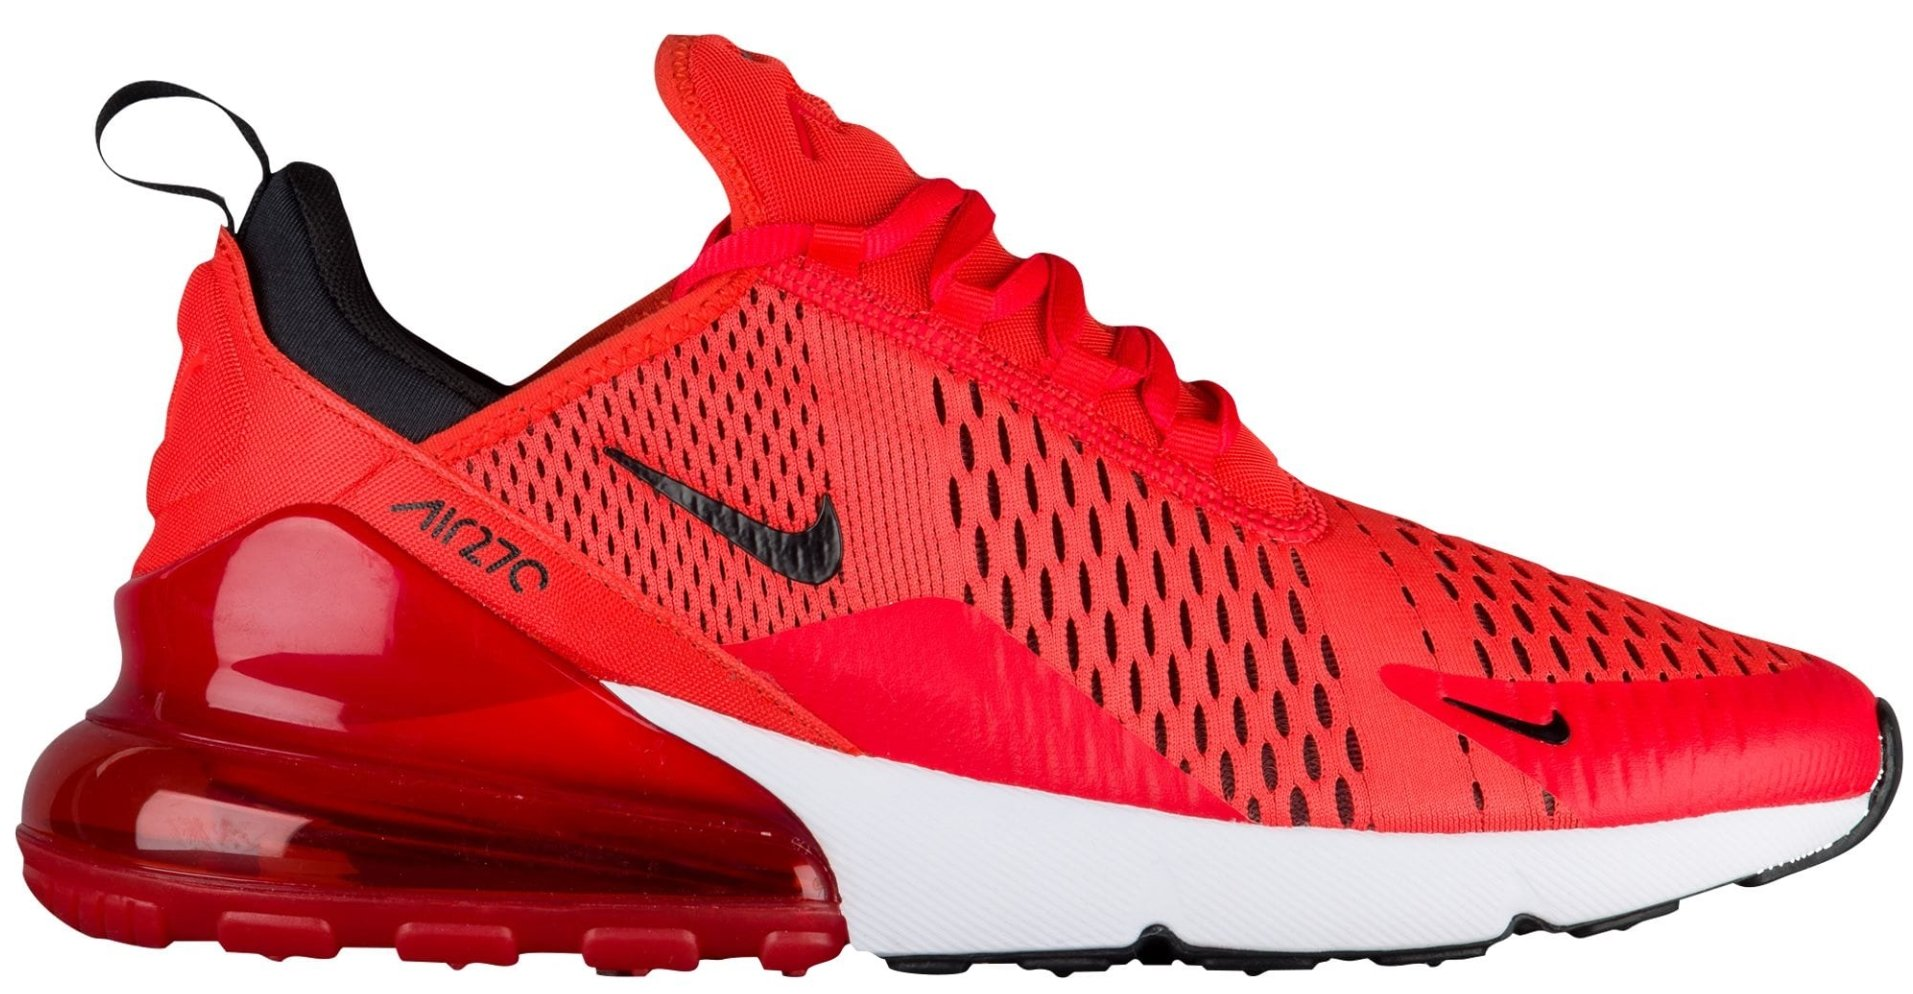 sports shoes 8f533 b3dd4 Galleon - Nike Air Max 270 Men s Shoes Habanero Red Black White Ah8050-601  (13 D(M) US)